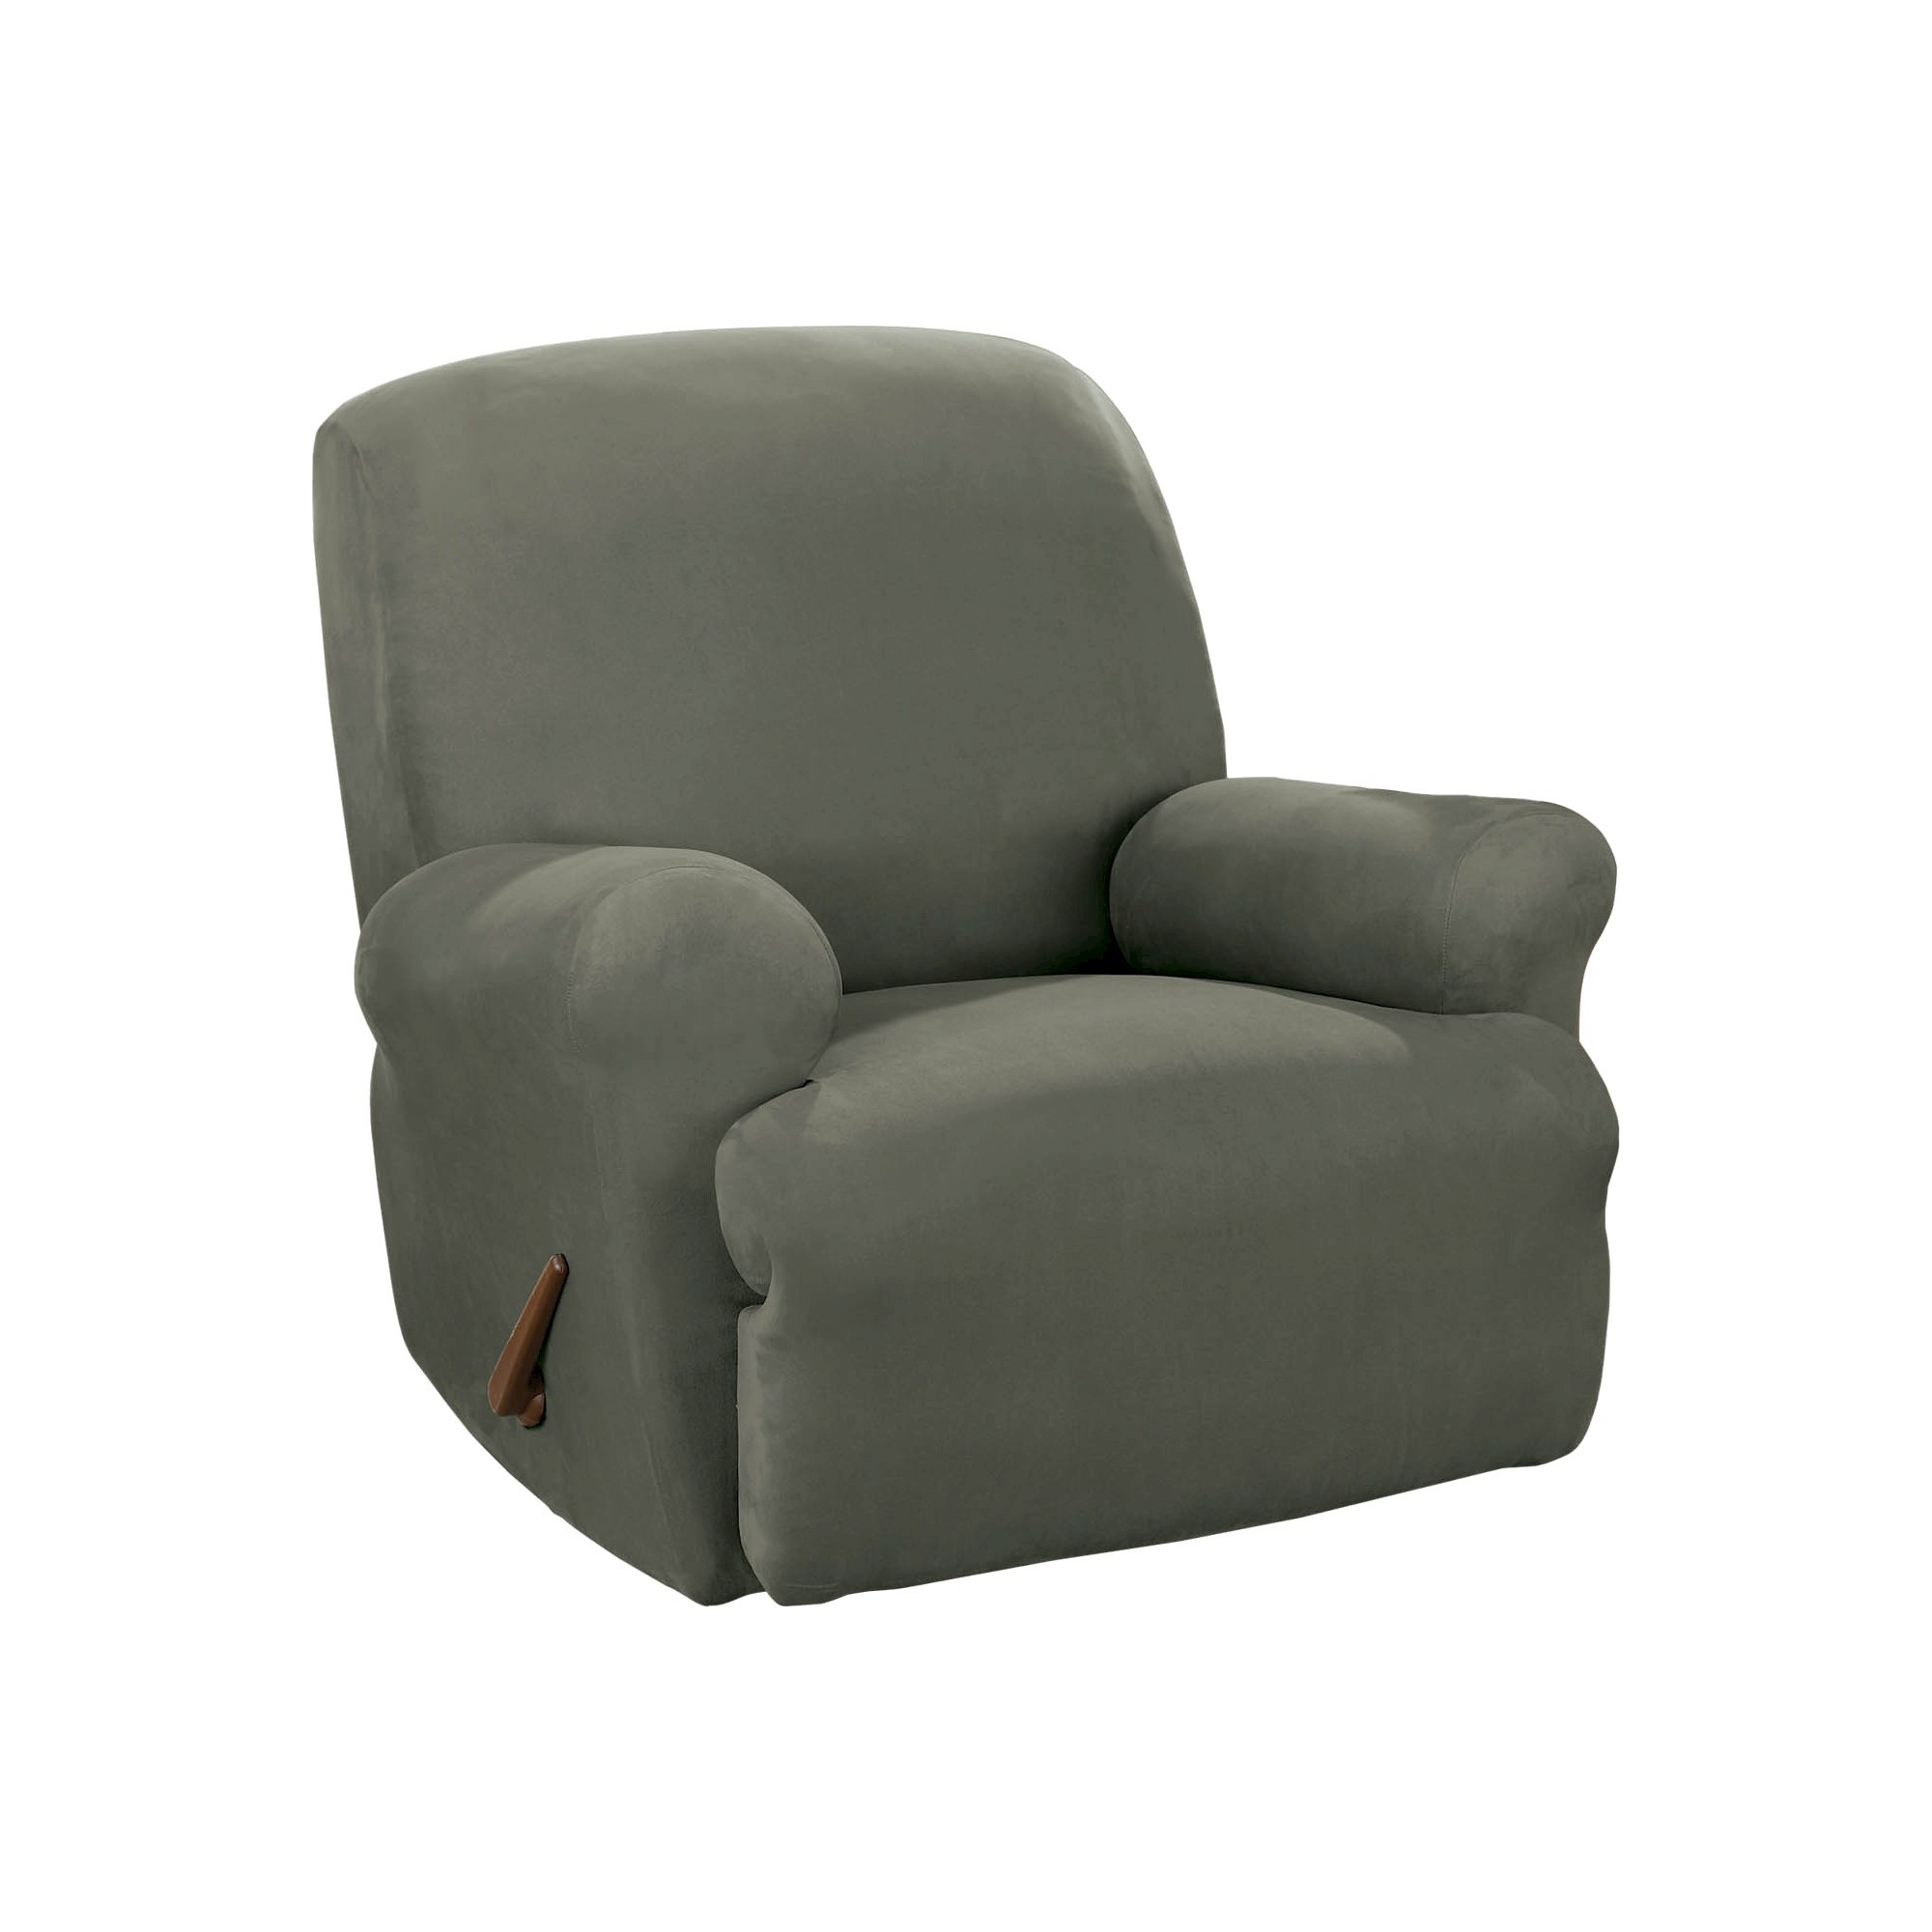 relaxation home of the recliner recliners slipcover throughout chair and image for comfort redesign wing slipcovers